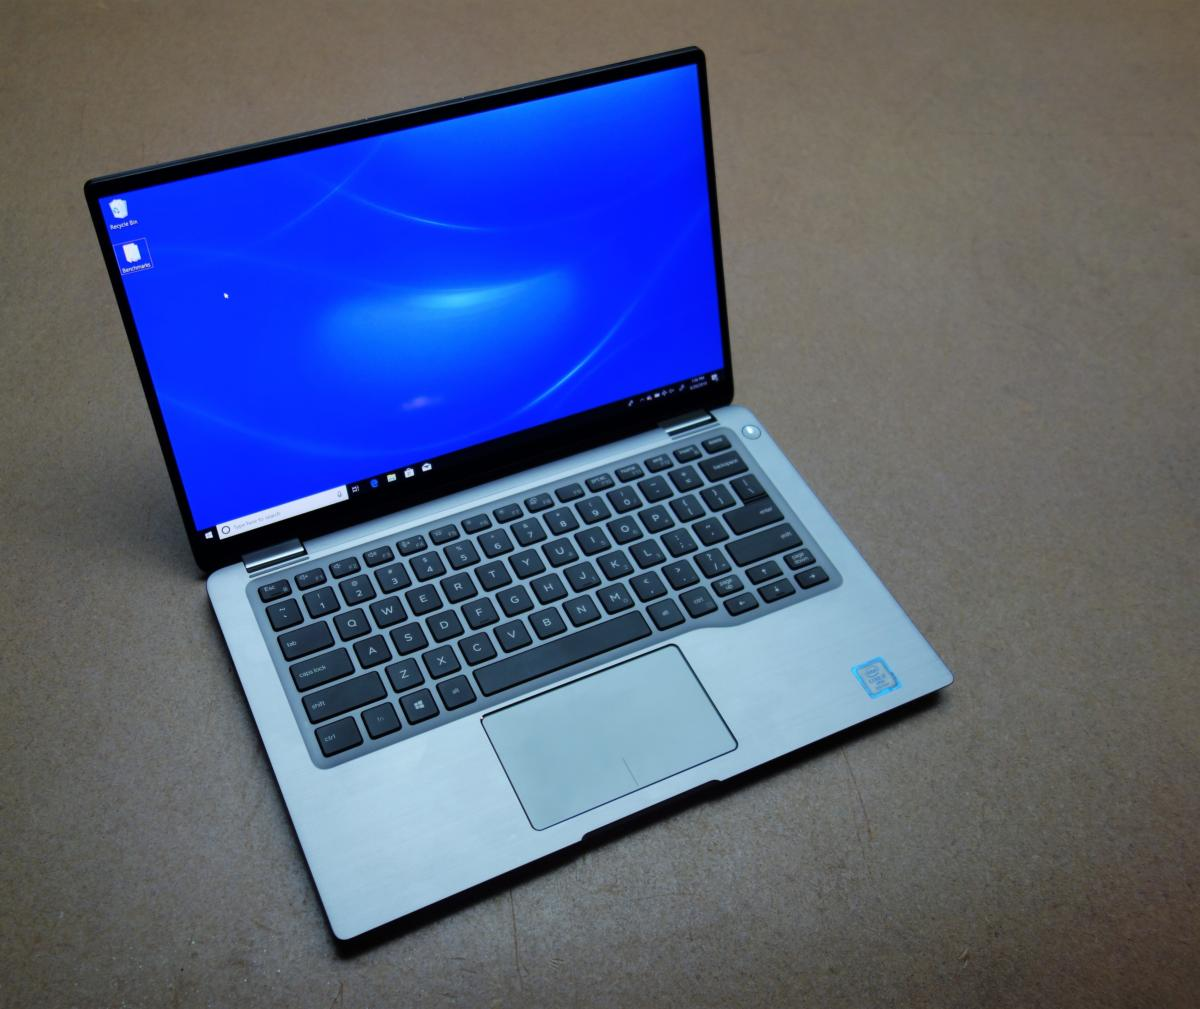 Dell Latitude 7400 2-in-1 review: A nearly perfect